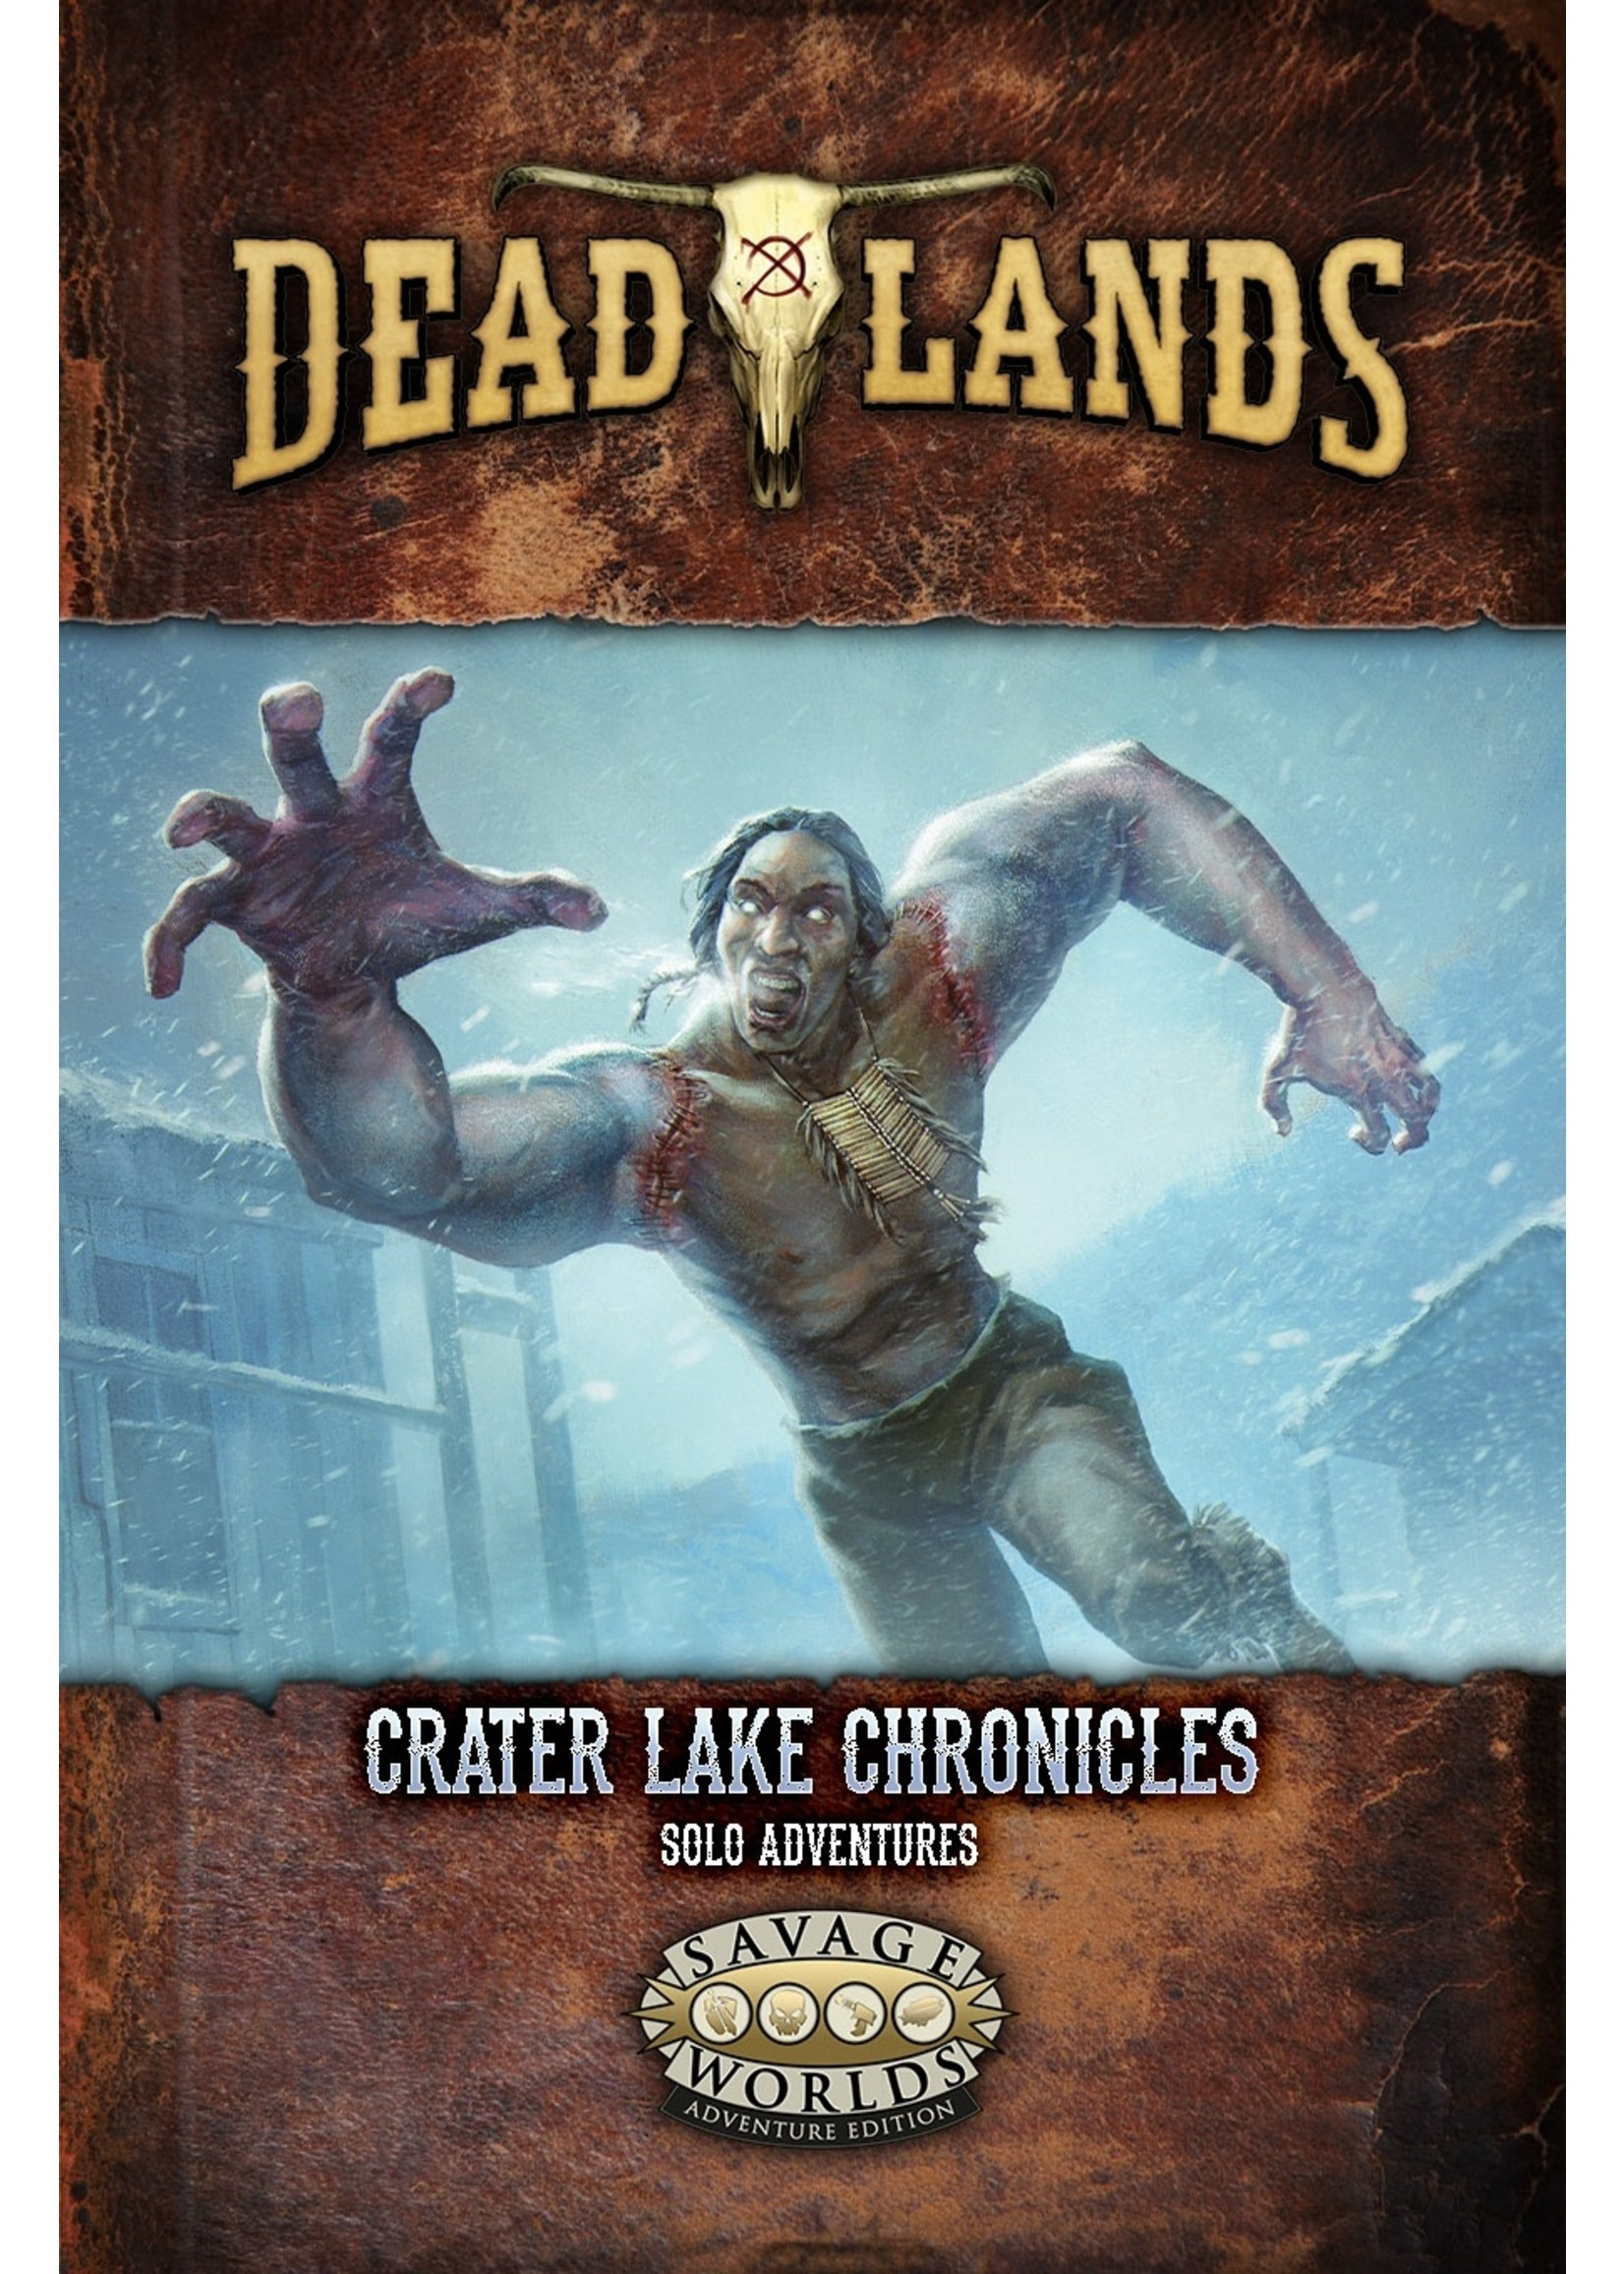 Savage Worlds RPG: Deadlands - Lake Chronicles Solo Adventure